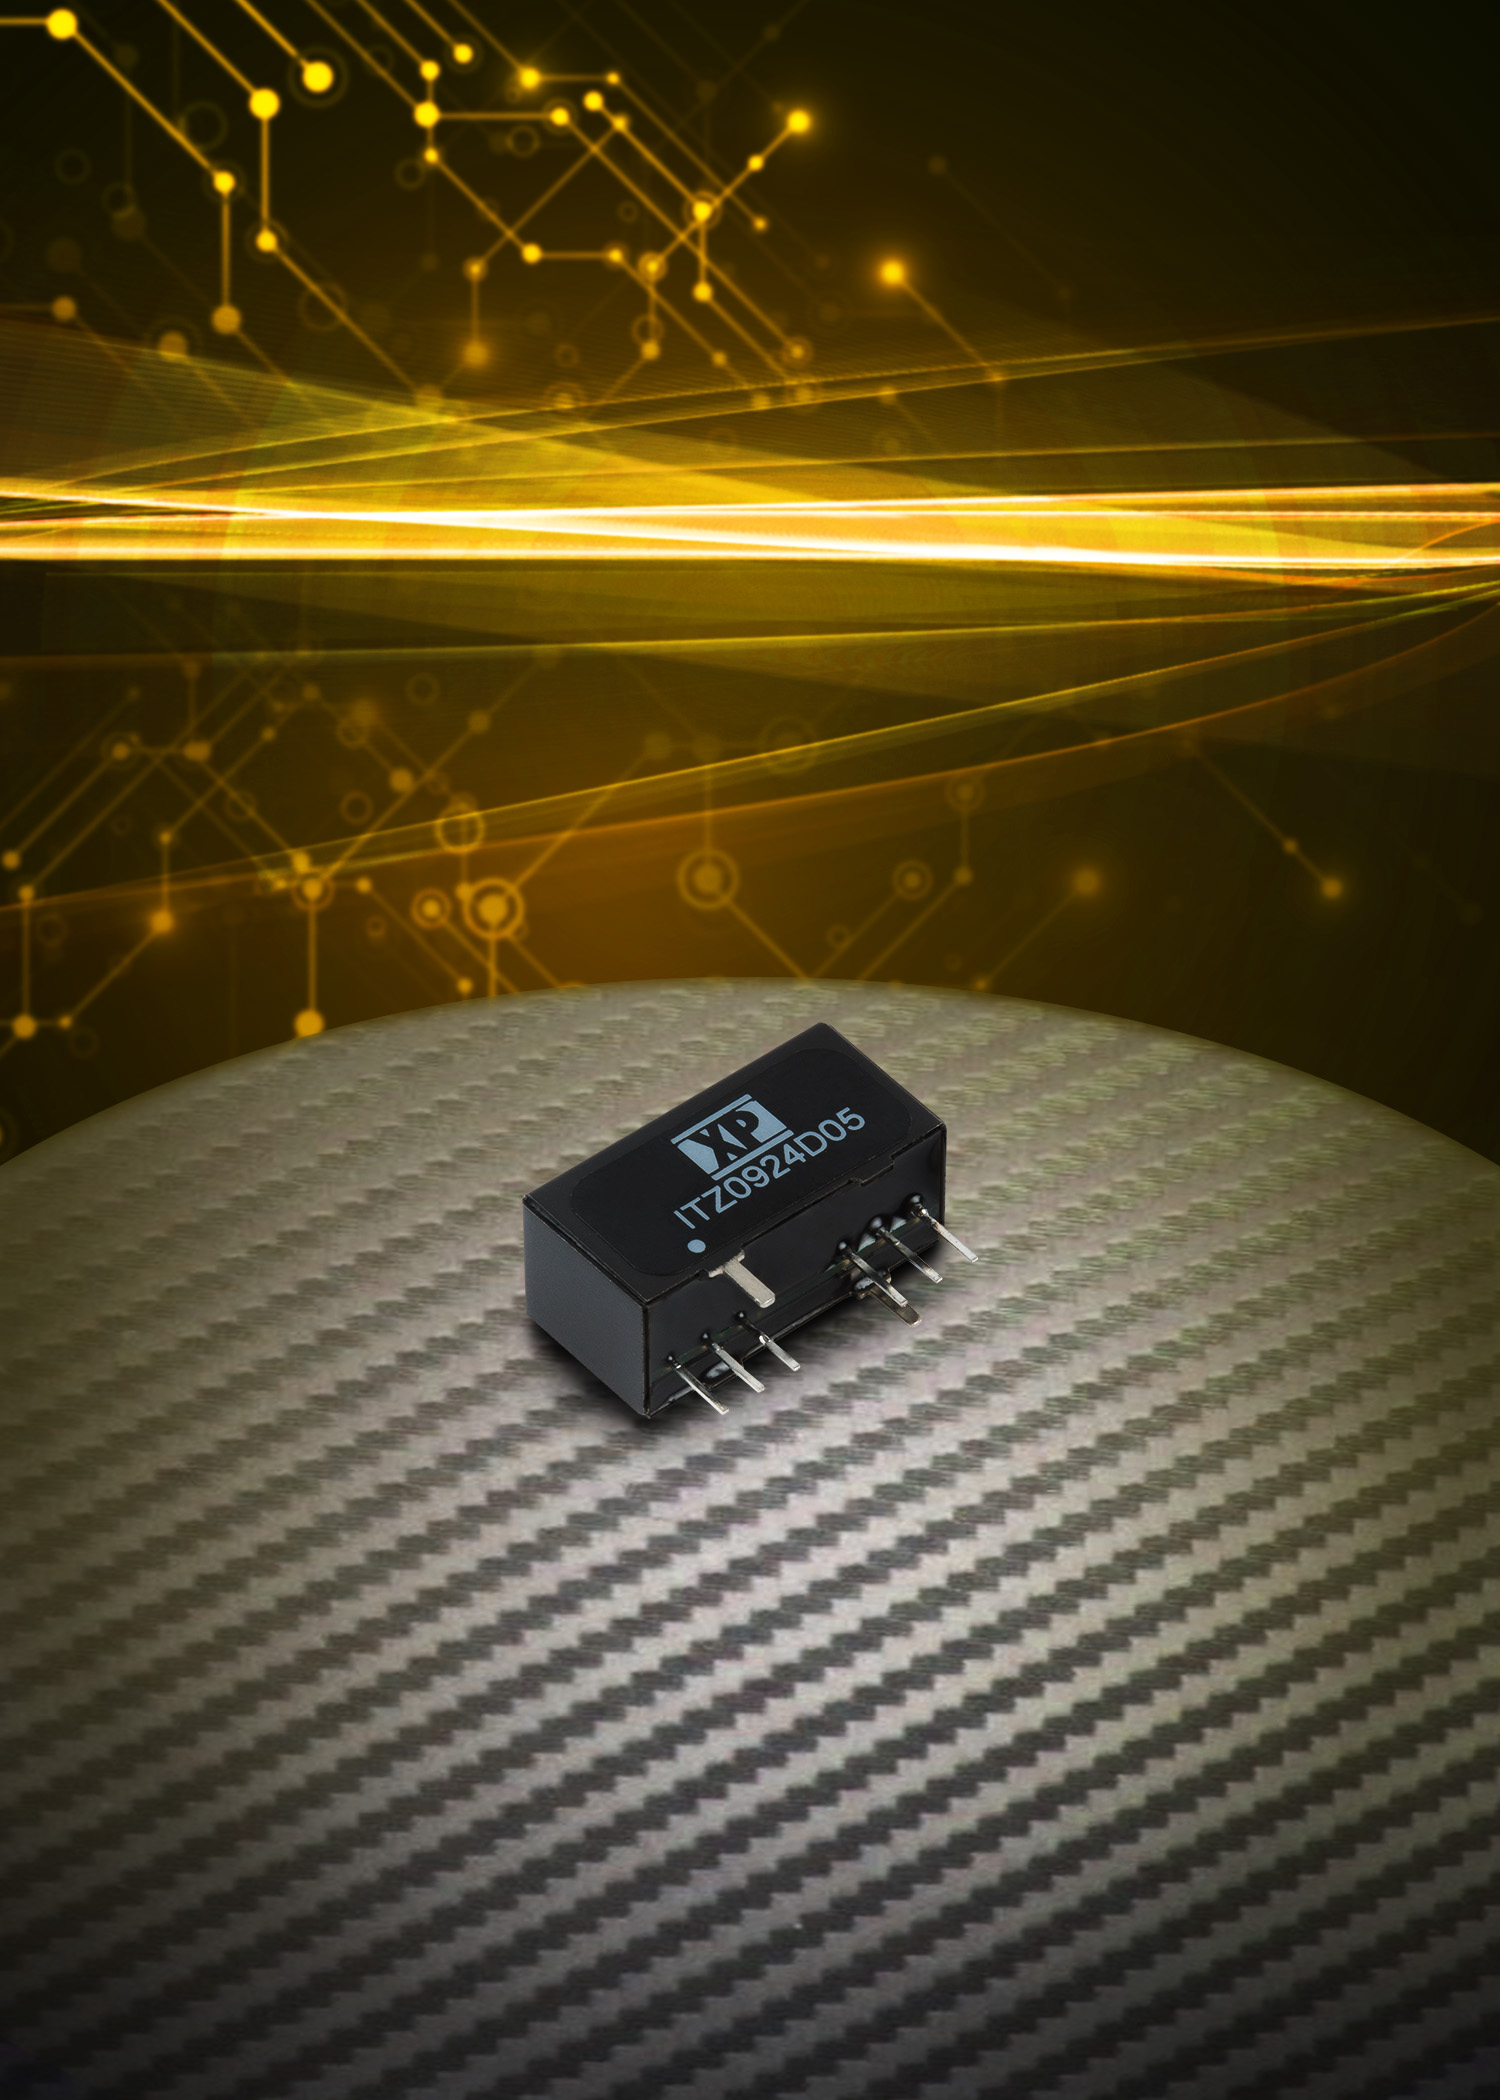 Industry's smallest regulated and isolated 9 W DC-DC converters offer 4:1 input range